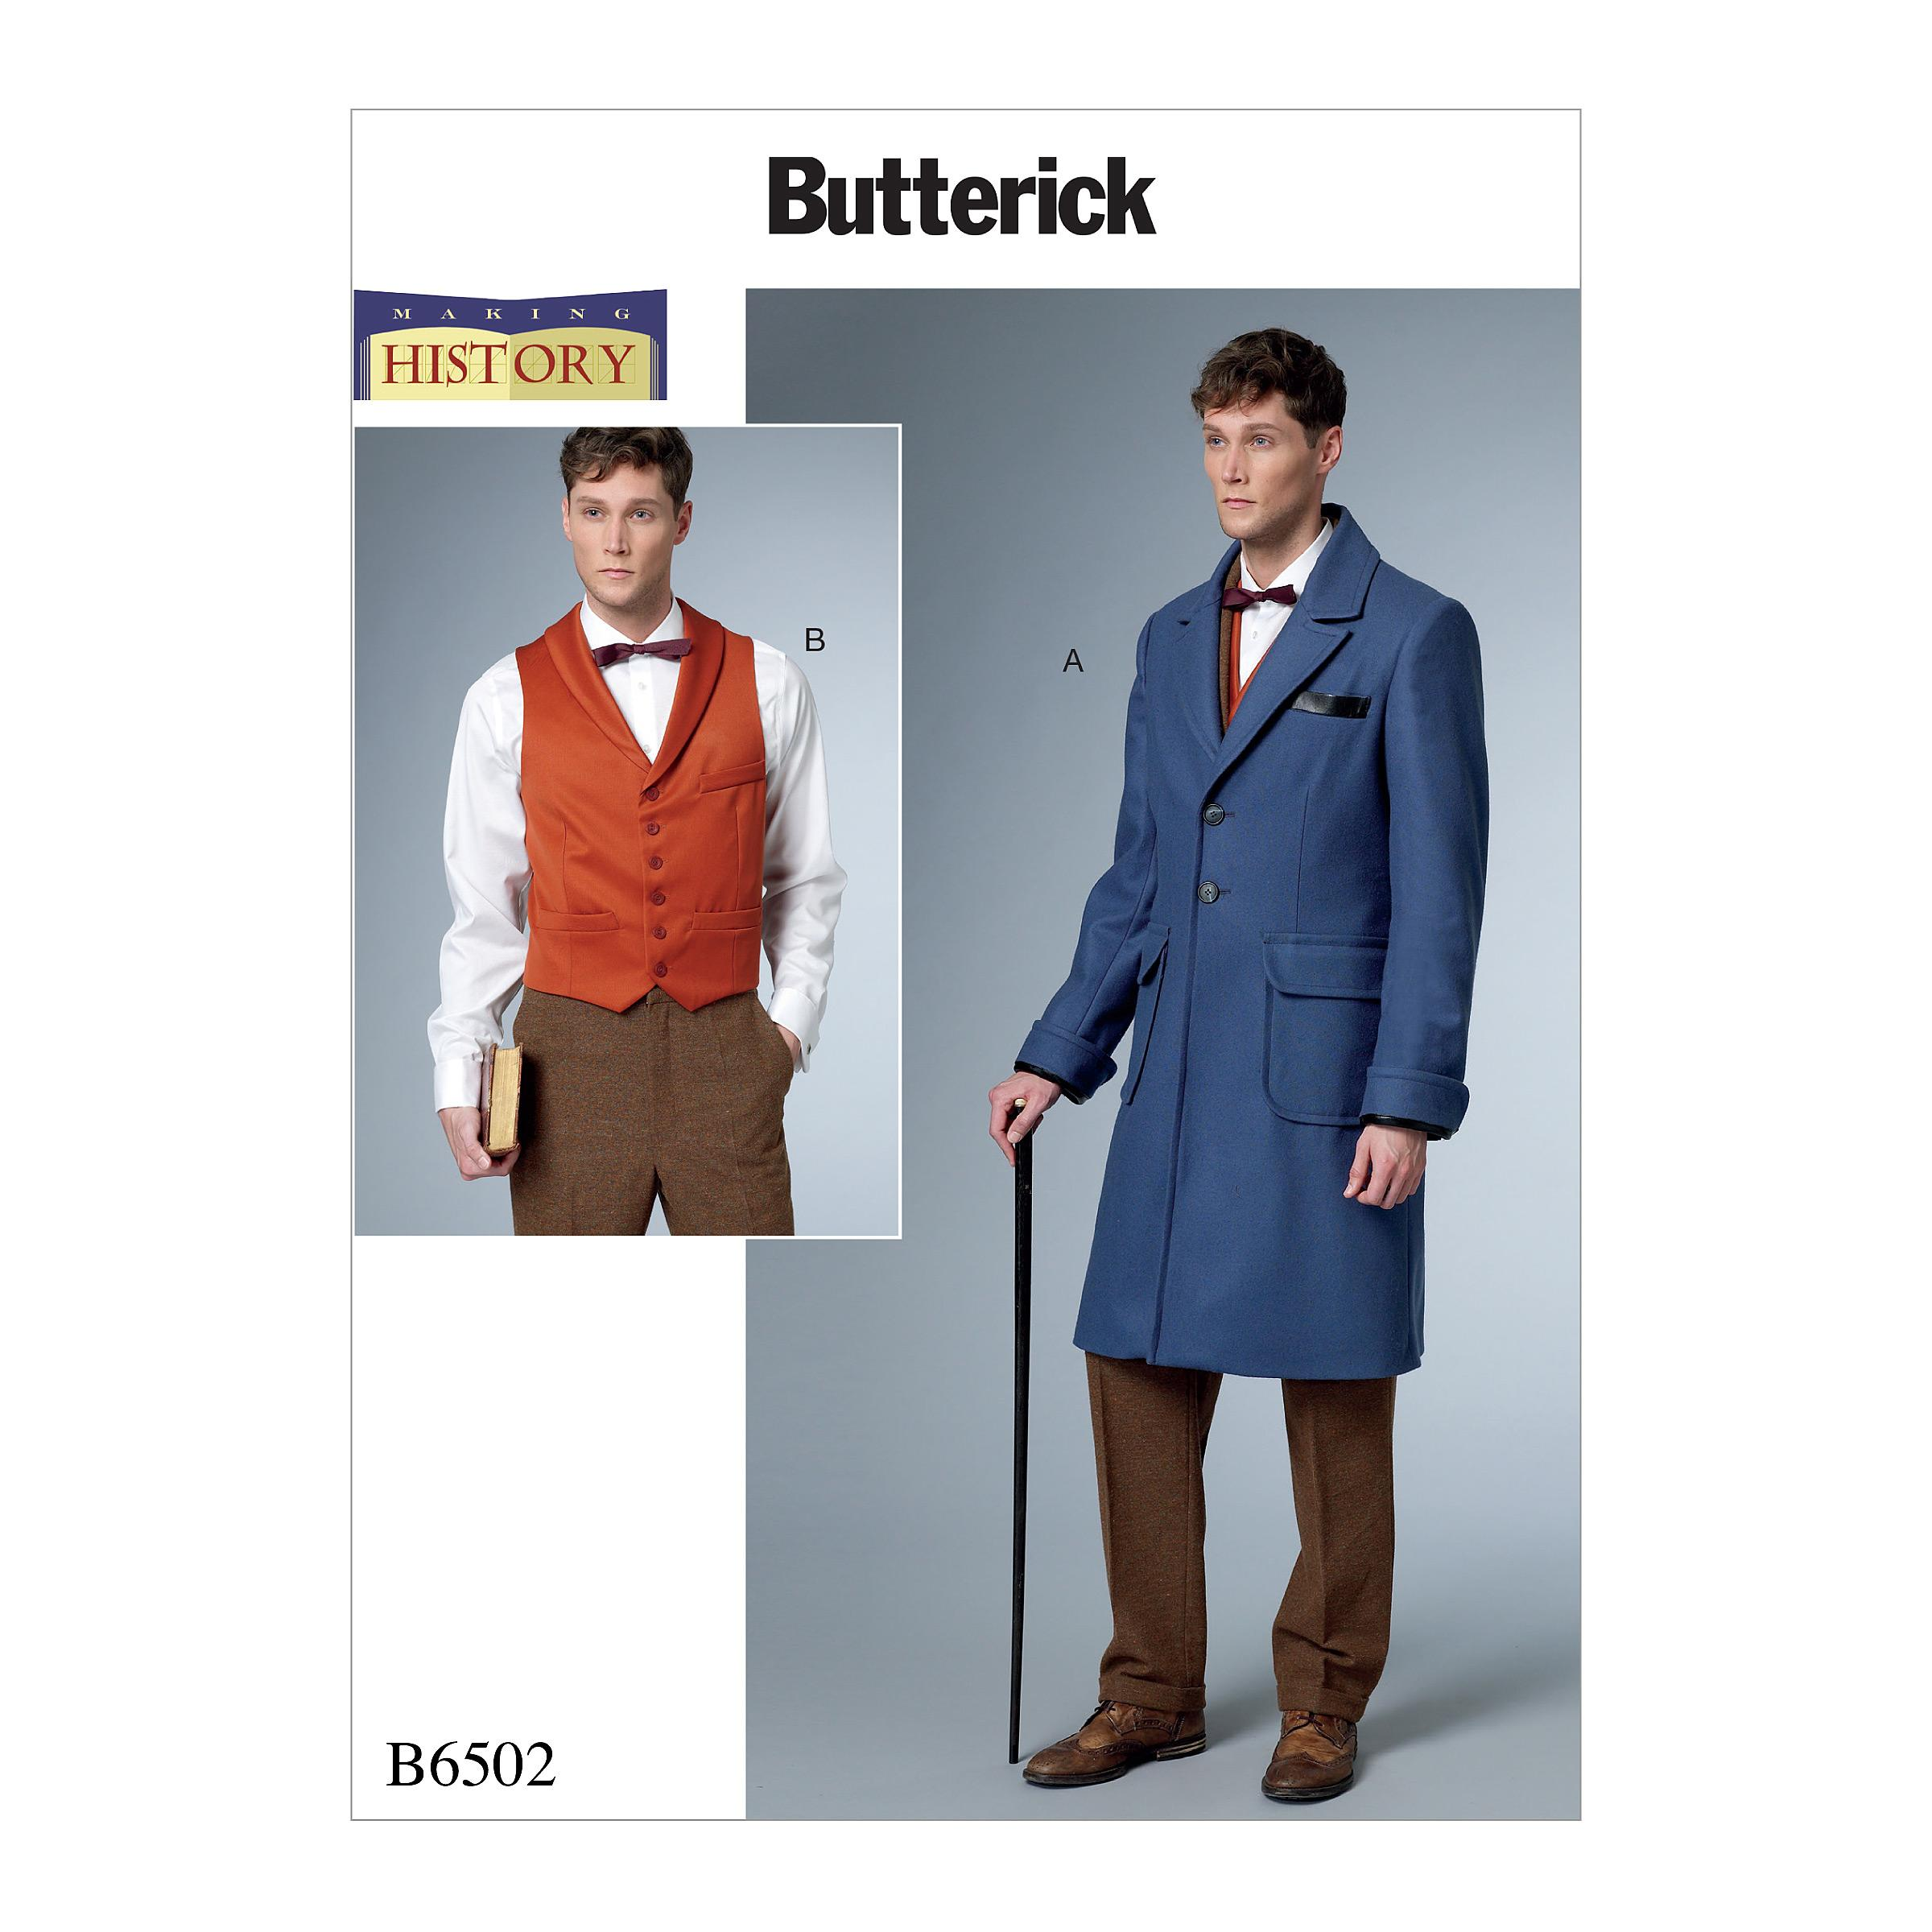 Butterick B6502 Men's Single-Breasted Lined Coat with Back Belt and Vest with Buckle